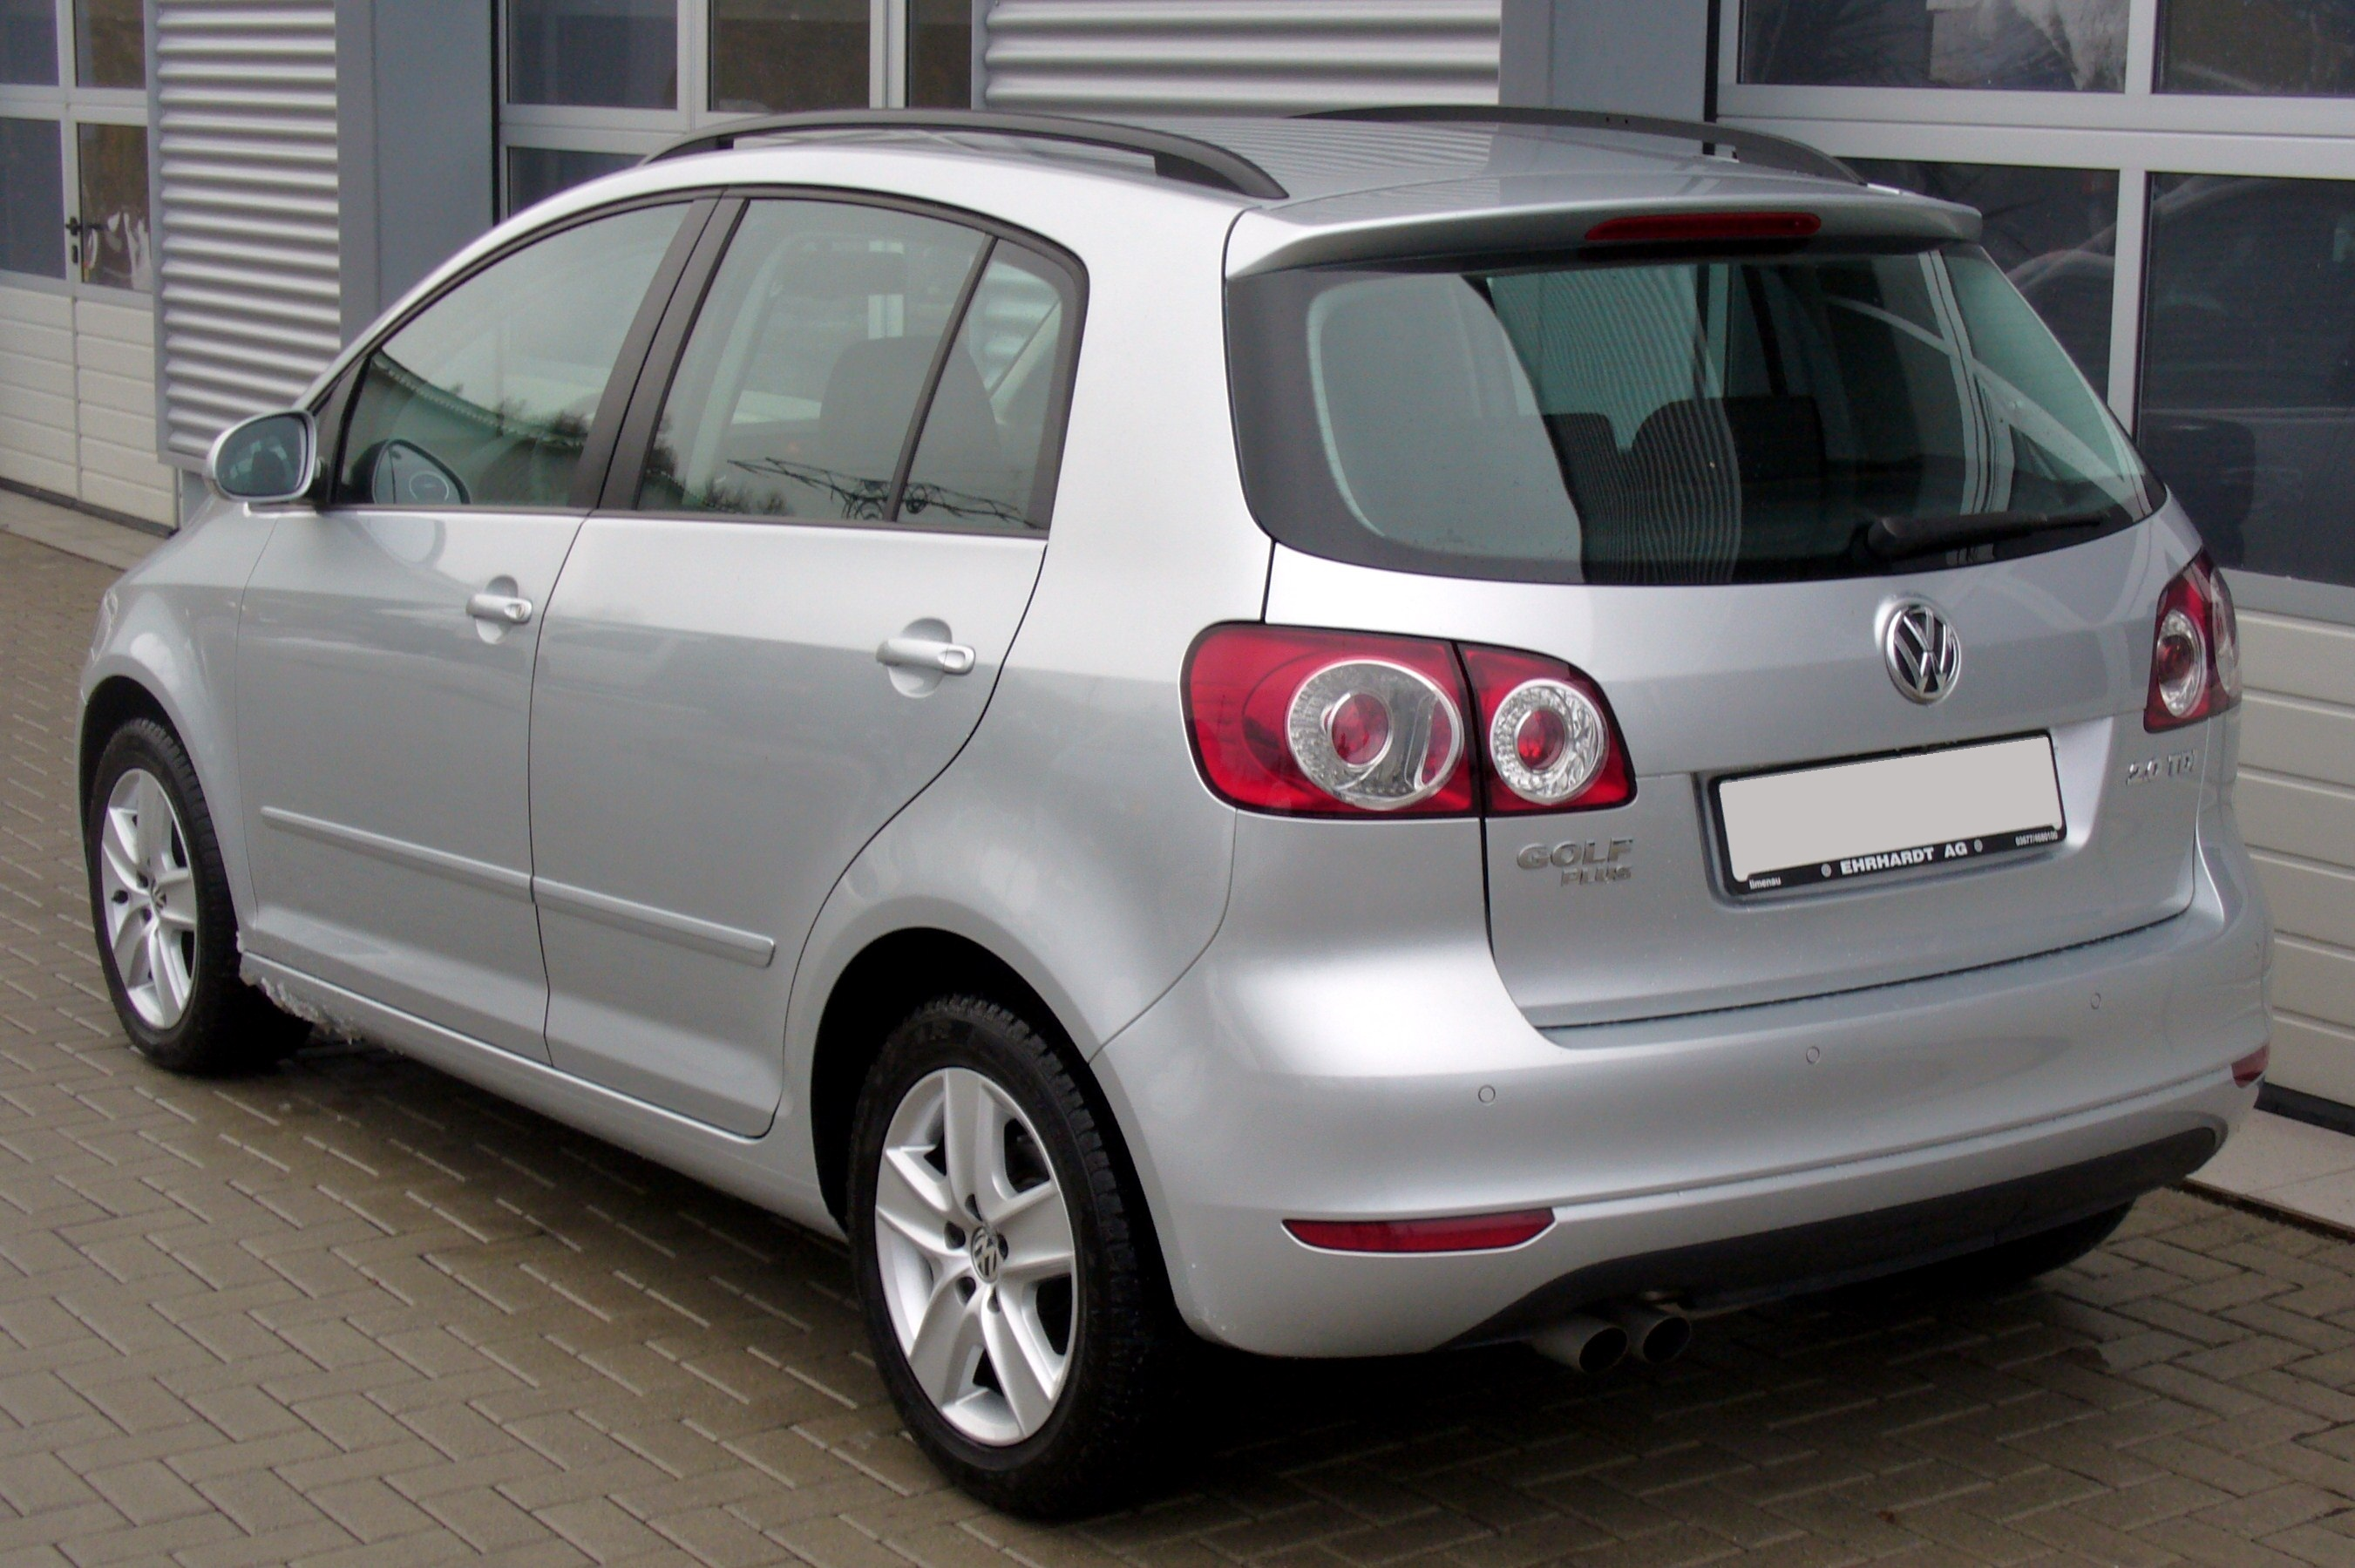 fichier vw golf plus 2 0 tdi comfortline reflexsilber heck jpg wikip dia. Black Bedroom Furniture Sets. Home Design Ideas